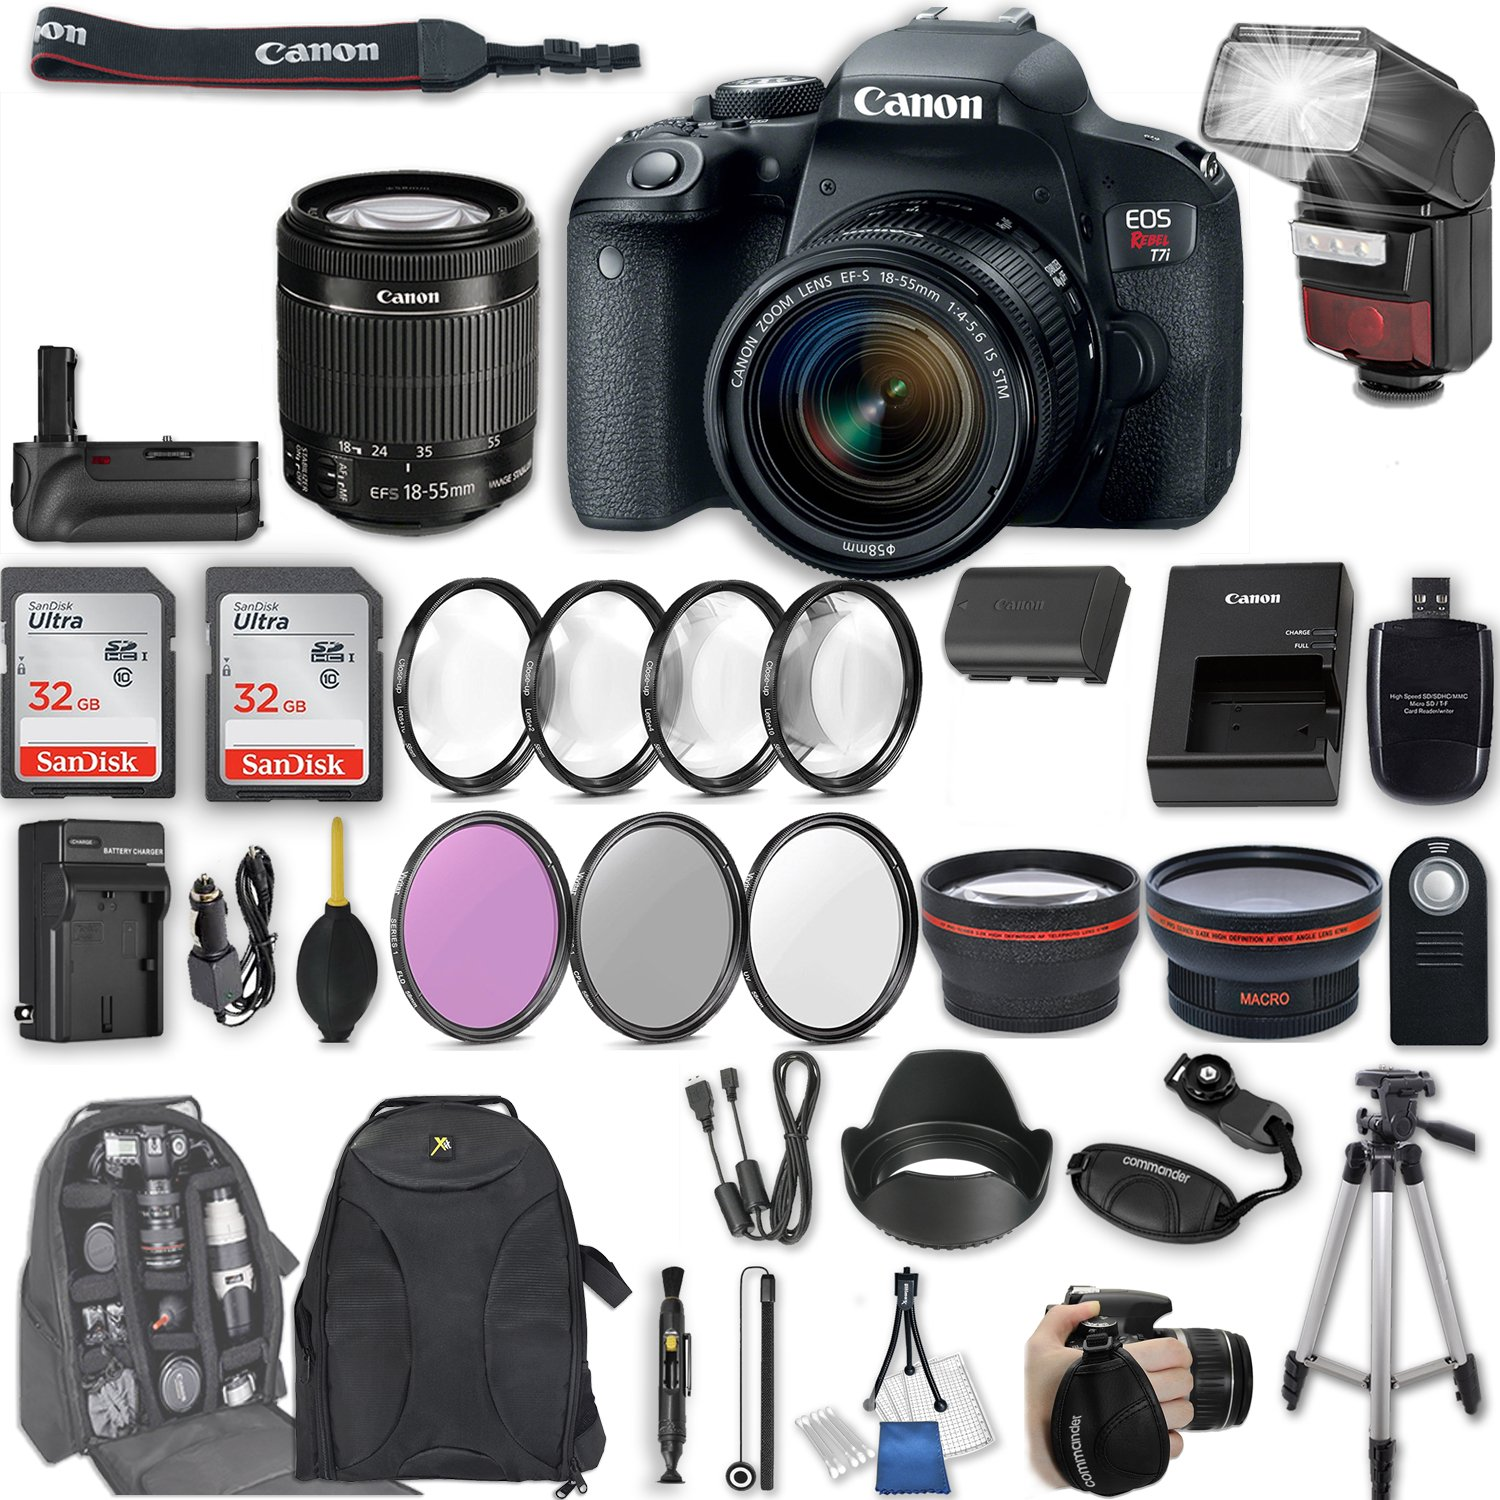 Canon EOS Rebel T7i DSLR Camera with EF-S 18-55mm f/4-5.6 IS STM Lens + 2Pcs 32GB Sandisk SD Memory + Automatic Flash + Battery Grip + Filter & Macro Kits + Backpack + 50'' Tripod + More by Canon